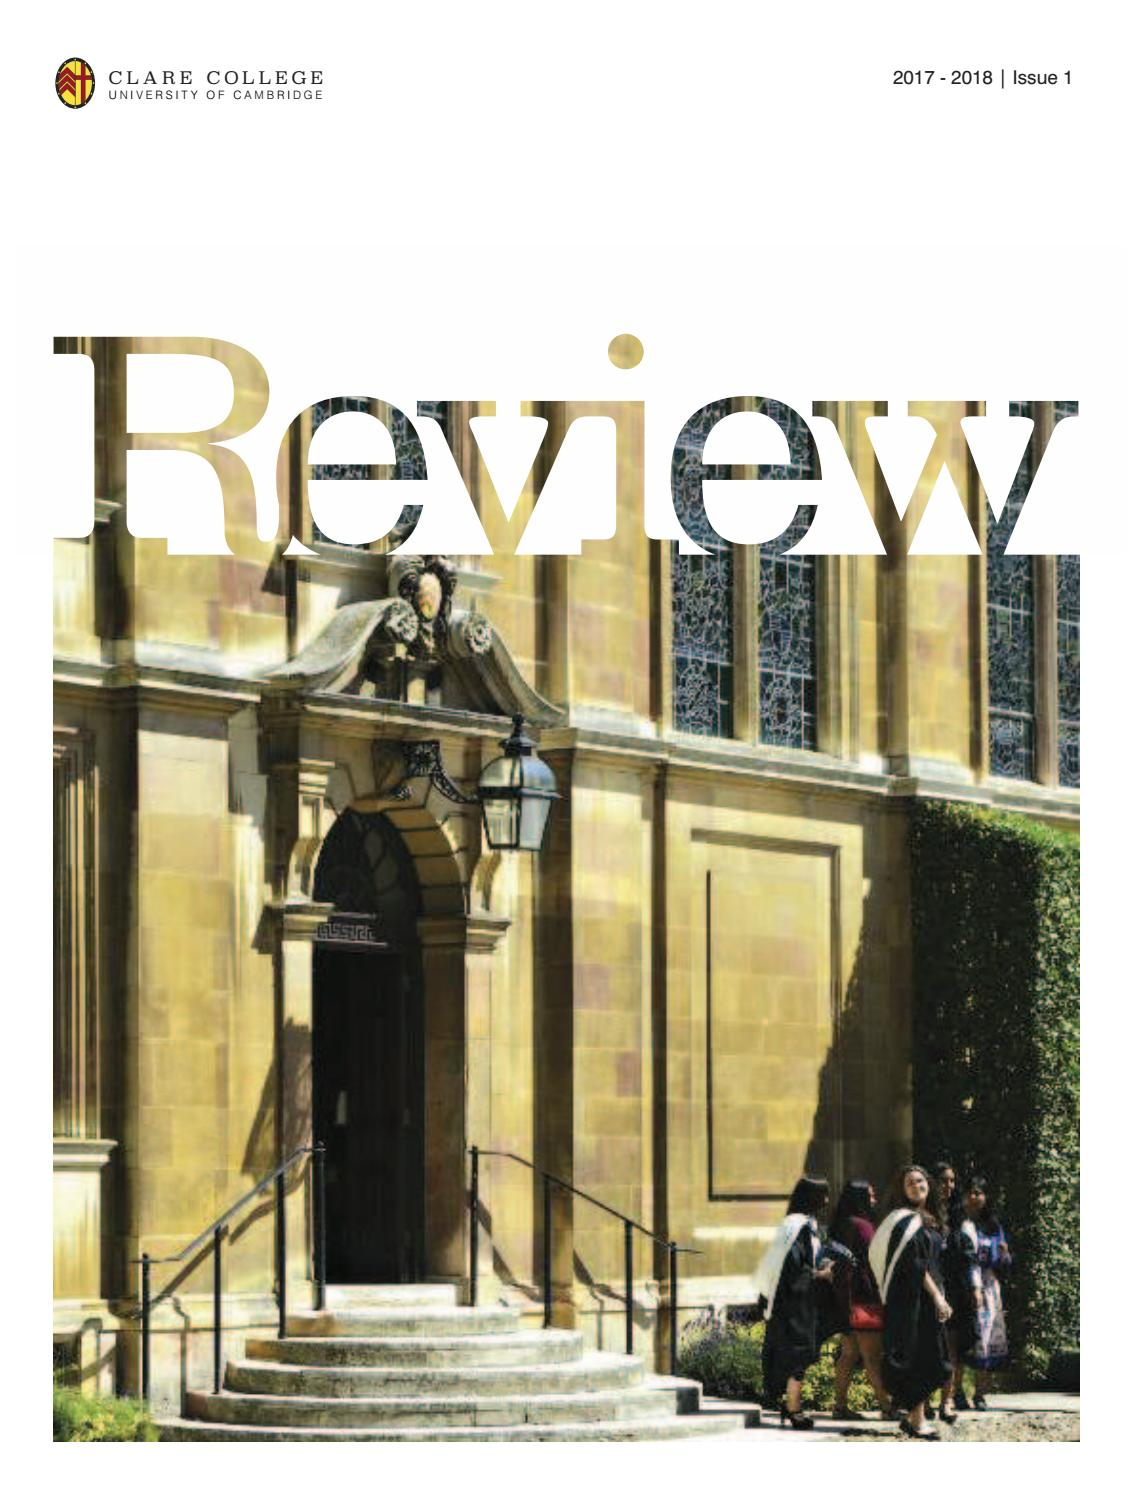 Clare Review - Issue 1 - 2017-2018 by Clare College - issuu